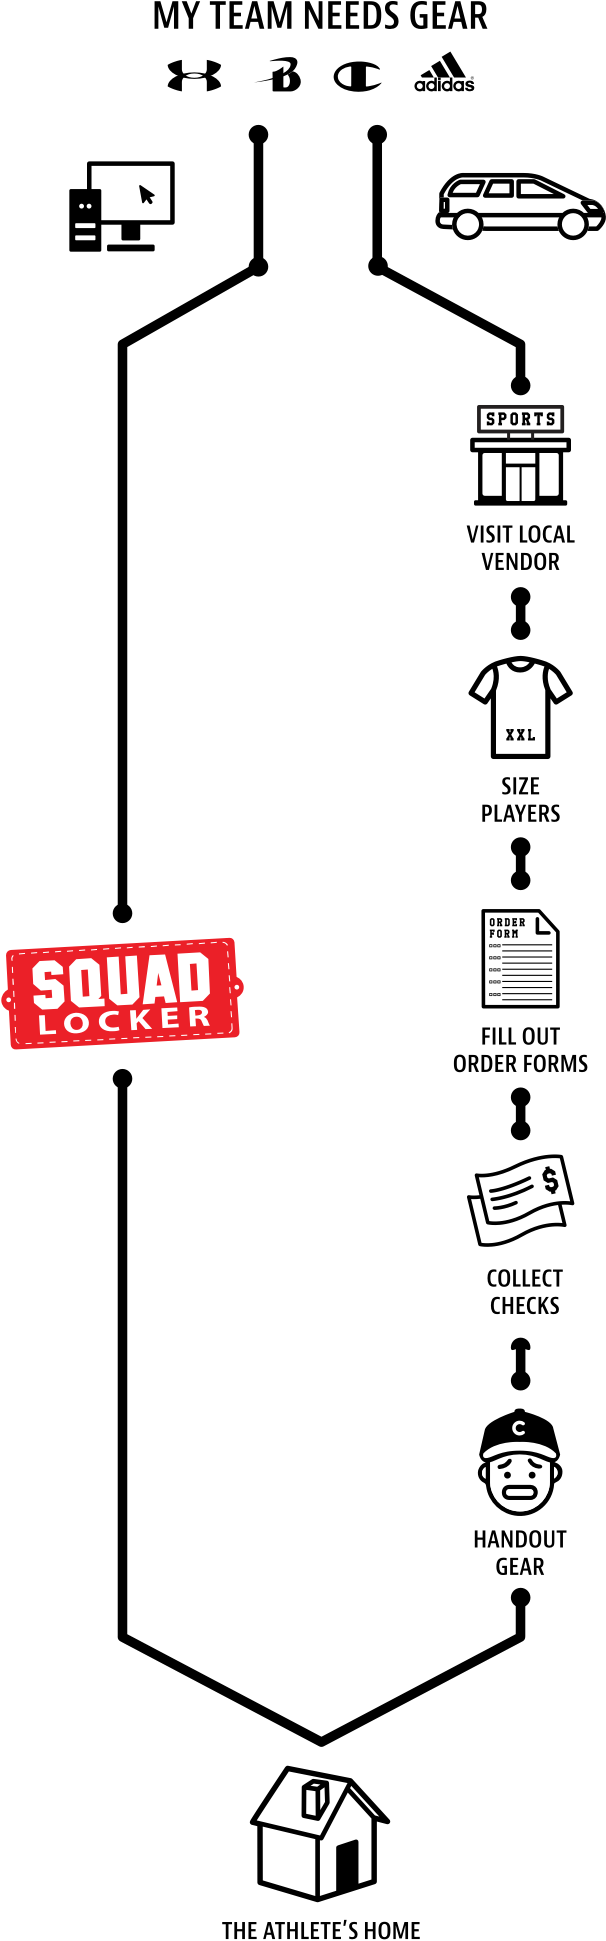 SquadLocker | Create Your Own Custom Team Gear